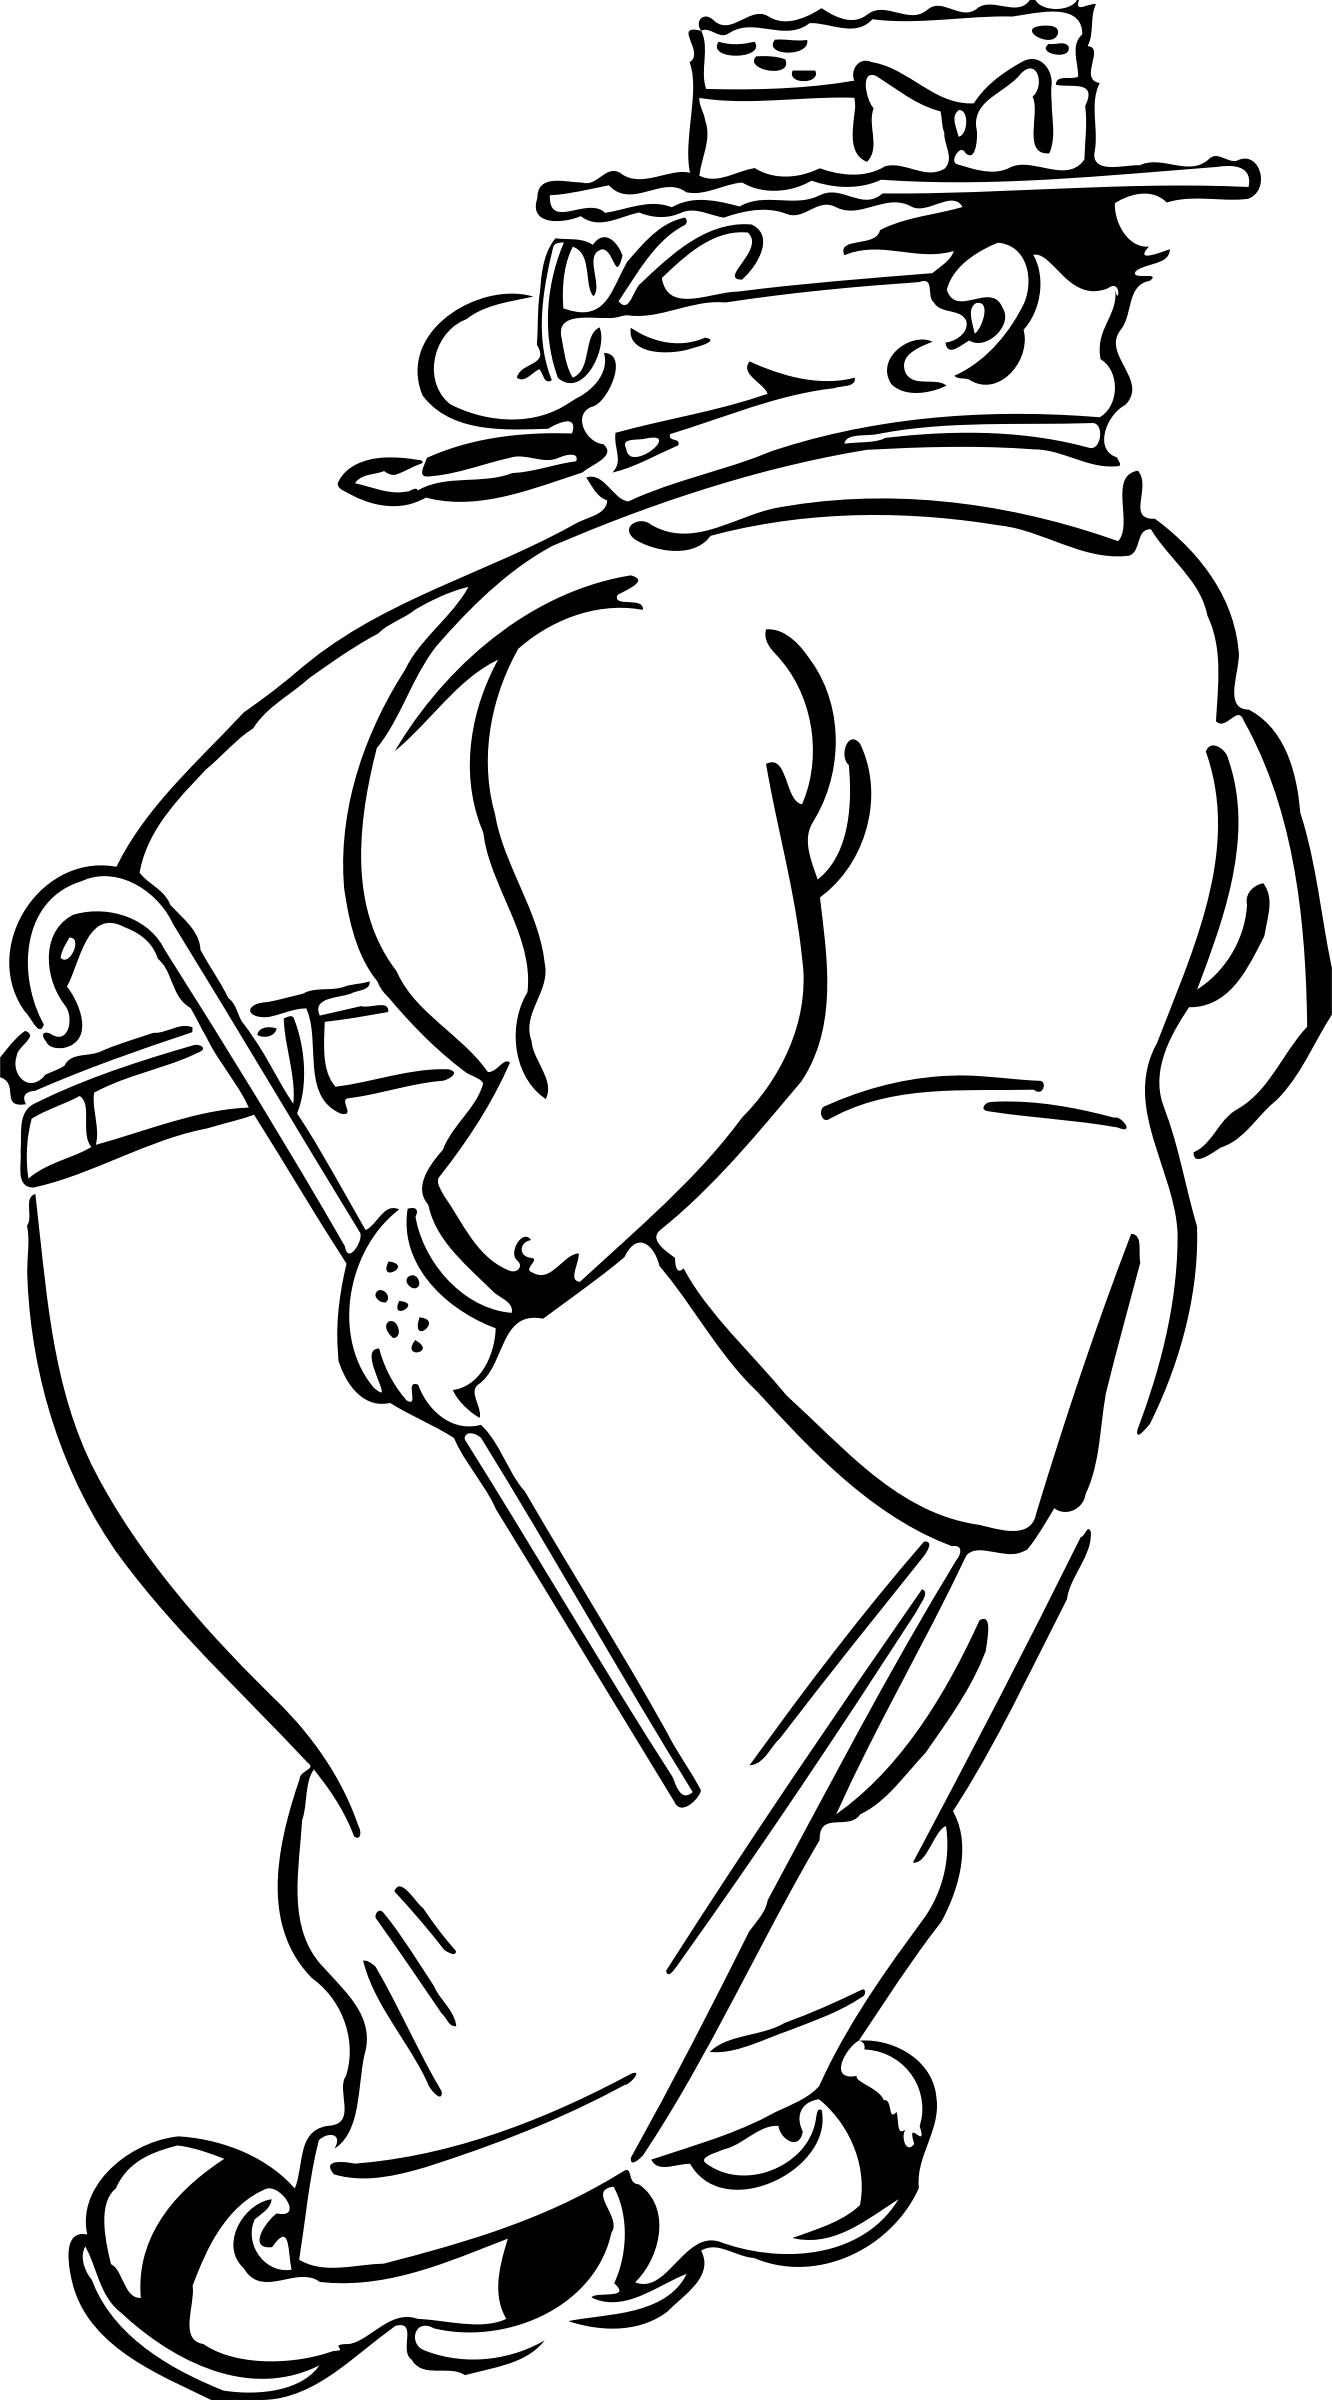 Fat clipart large man. With a cigar big